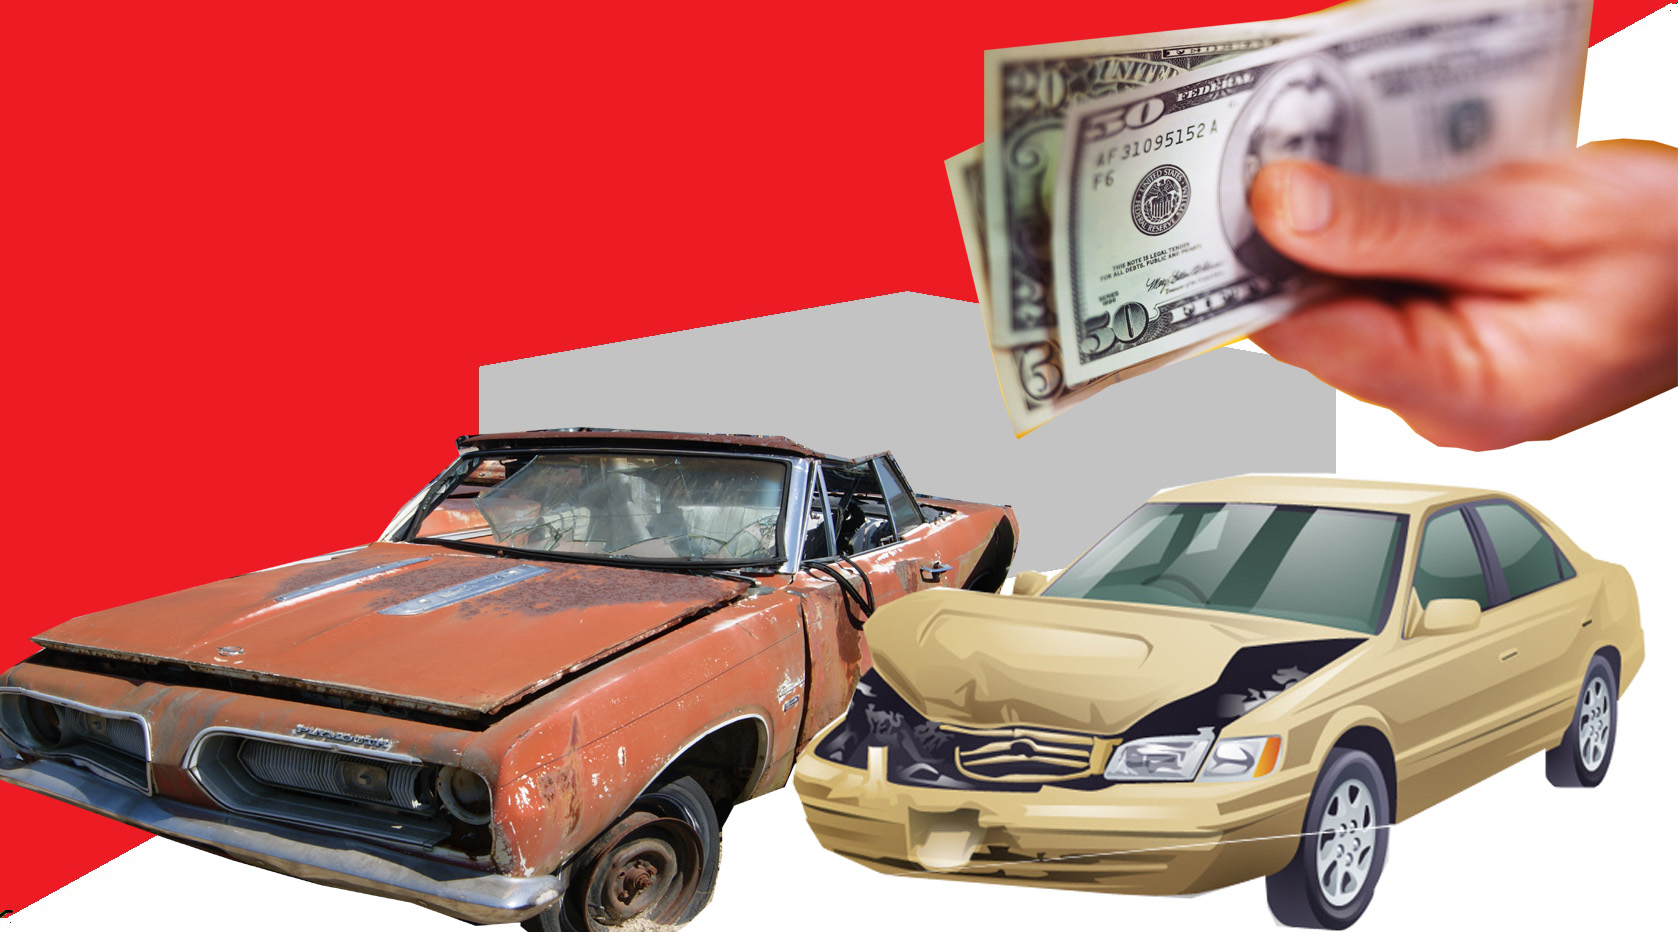 Easy Way Sell A Junk Car For Cash 1888 Pay Cash For Cars